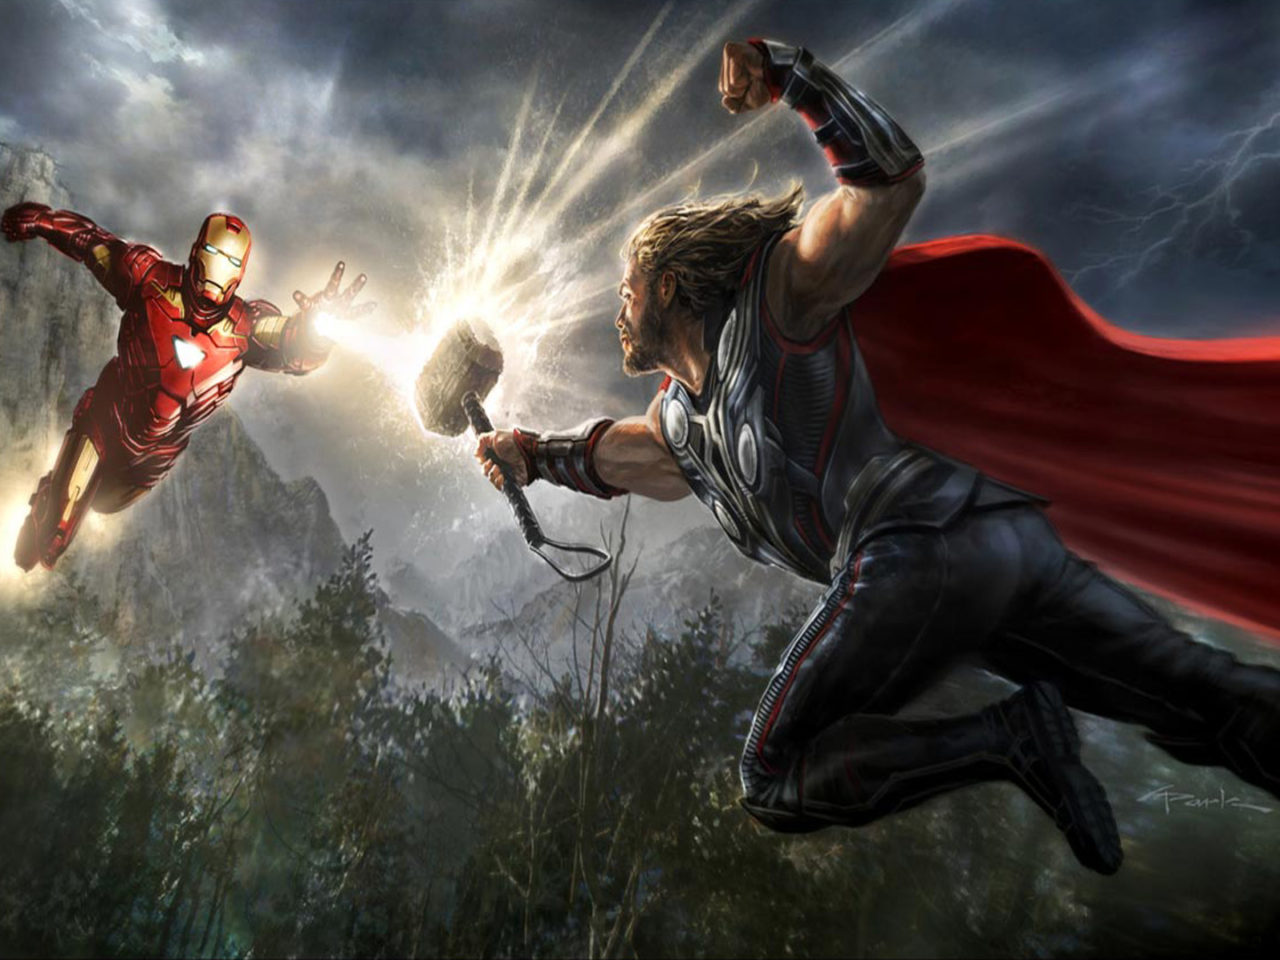 Infinity Wallpaper Iphone Thor And Iron Man The Avengers Marvel Movies Full Hd